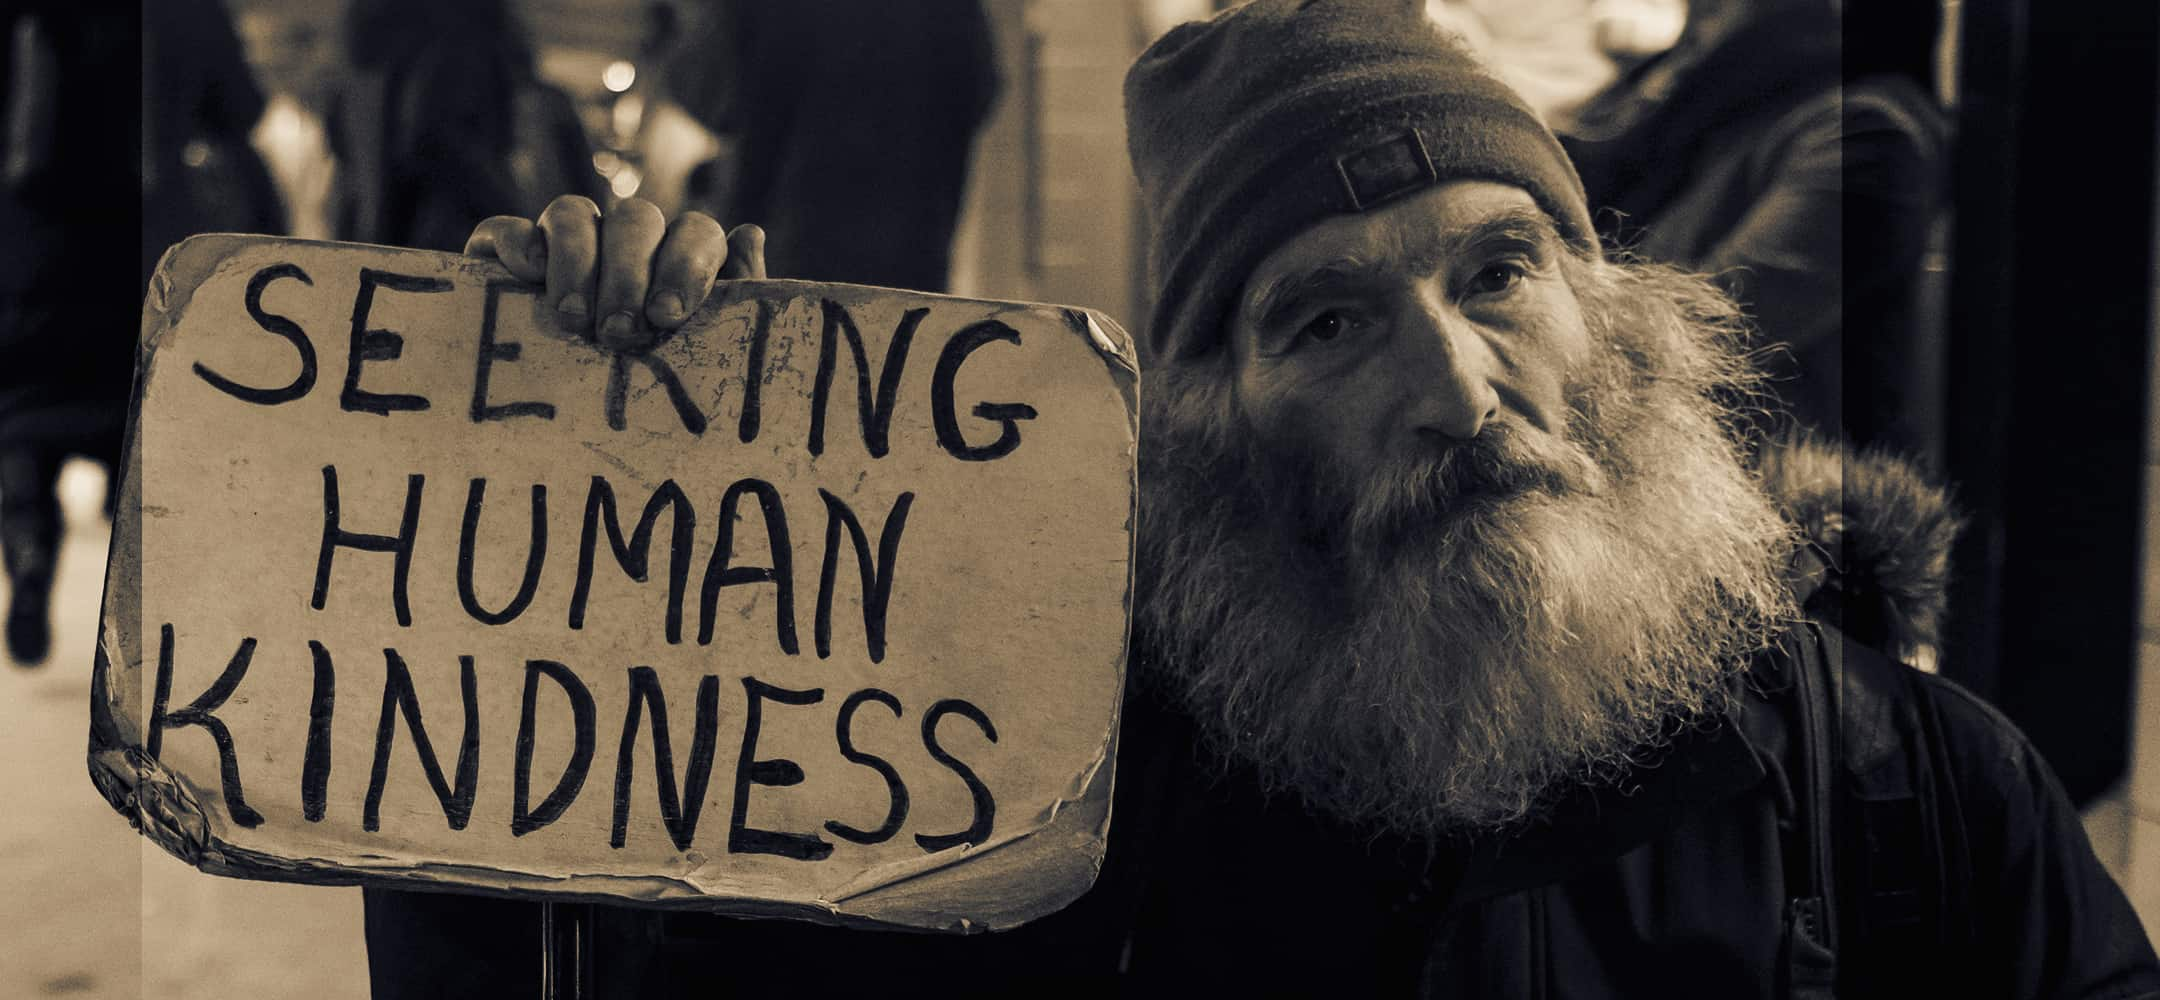 Old Man Holding a Seeking Human Kindness Sign